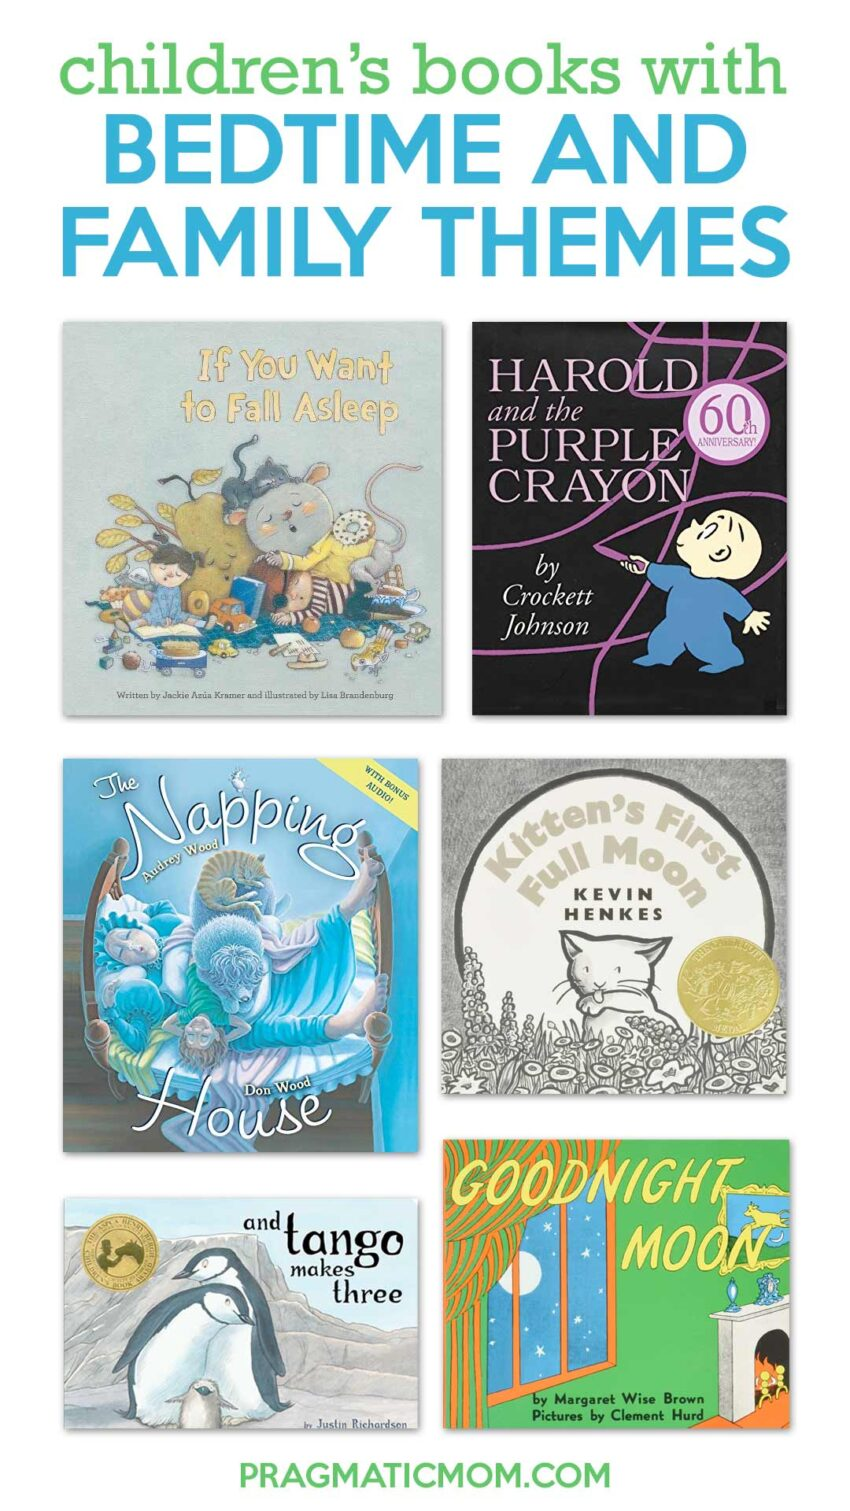 Books with Bedtime & Family Themes